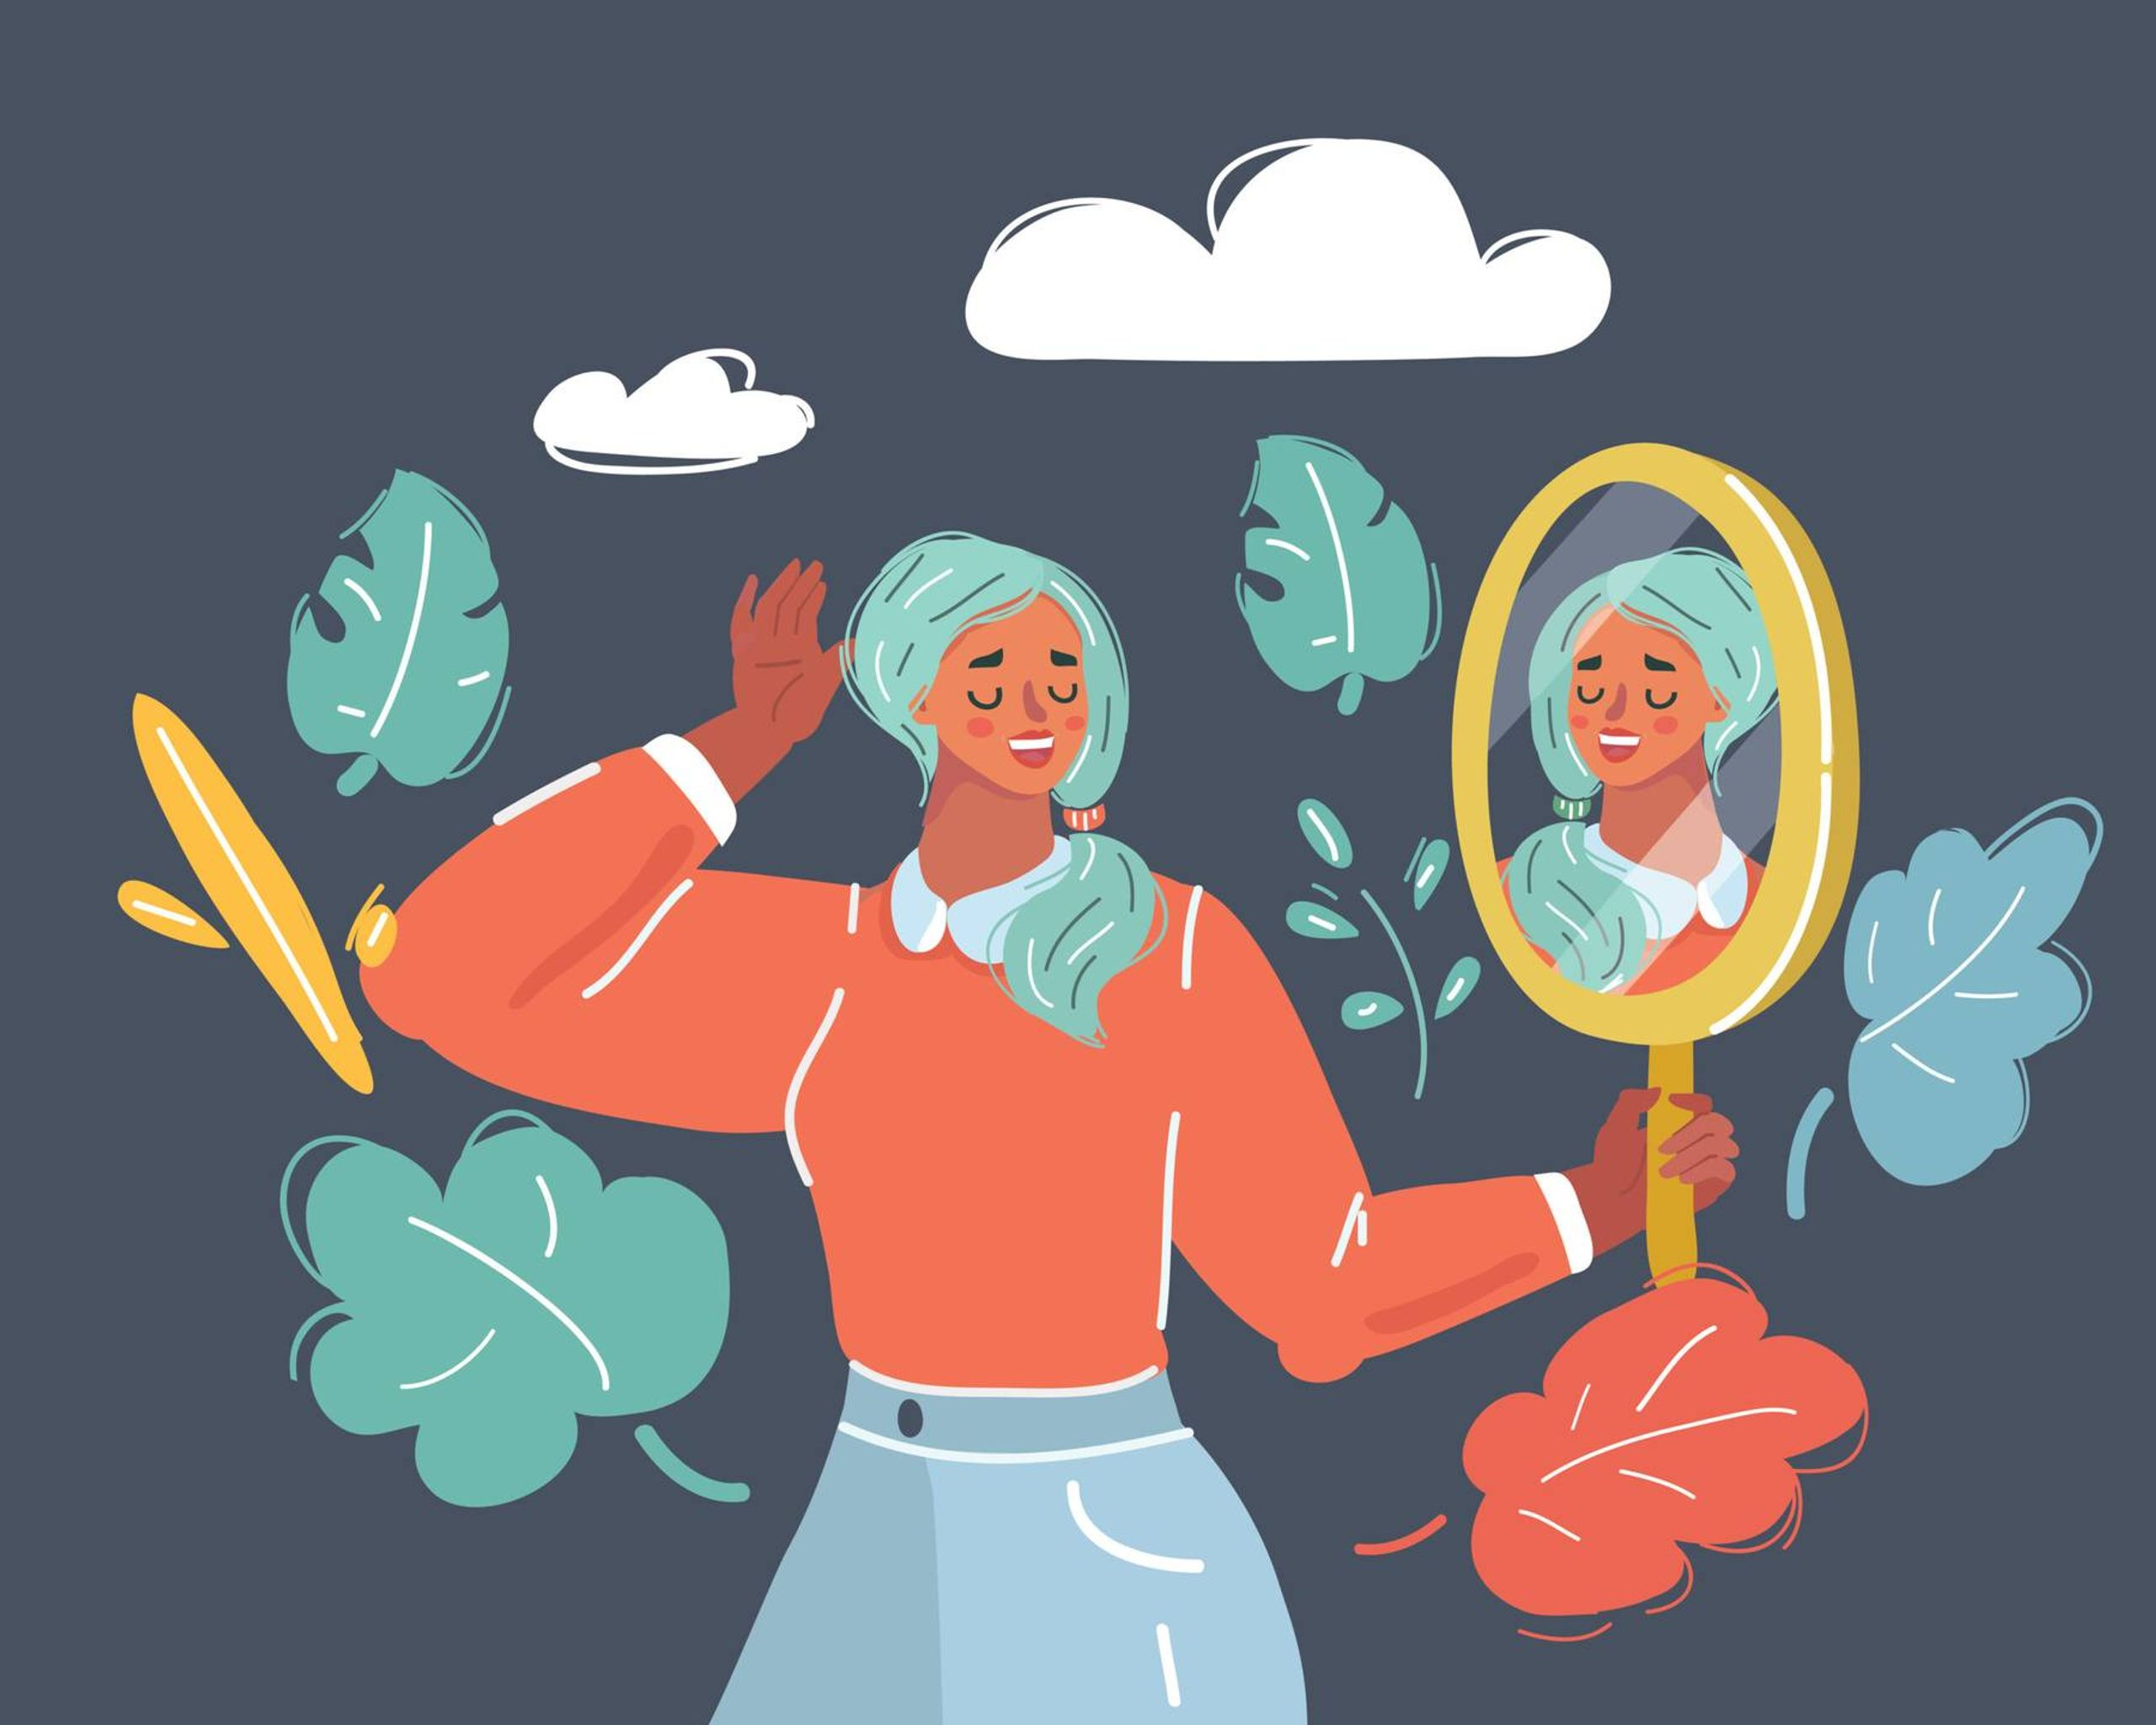 Illustration of a woman looking at herself in a mirror and smiling, asexuality, Rewire